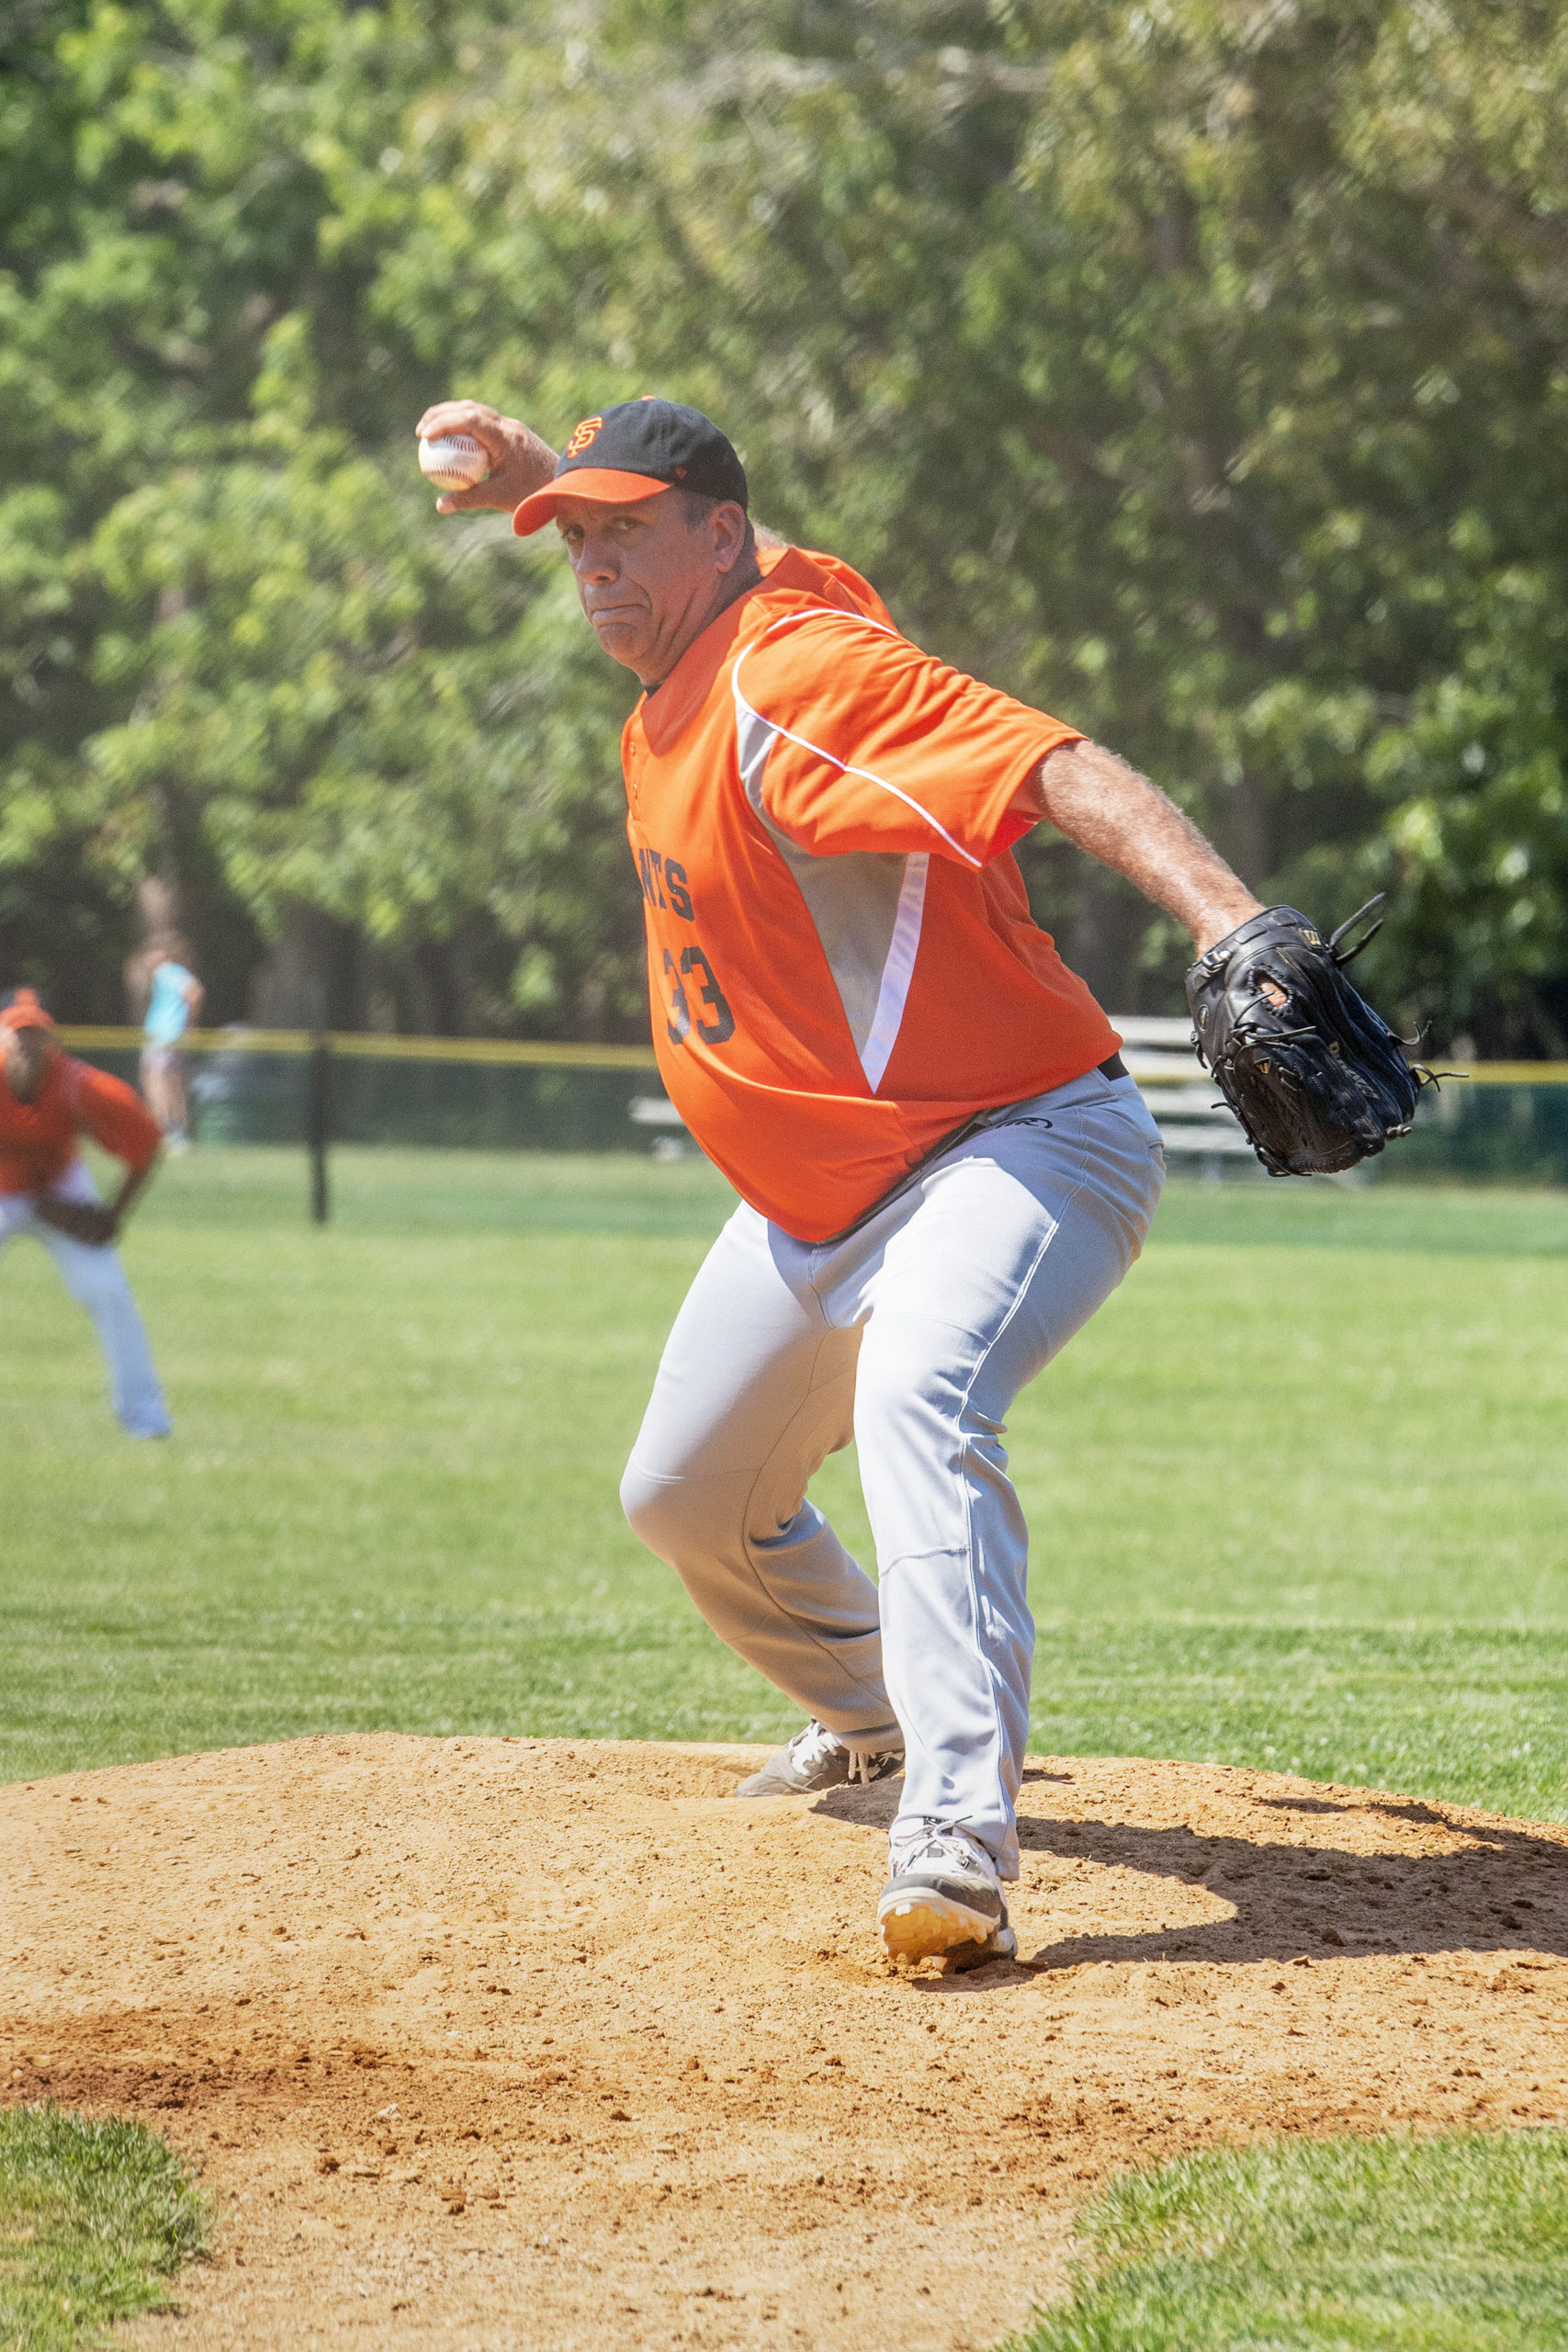 Hamptons Adult Hardball League Co-Founder Pete Barylski pitches during the league's inaugural game at Mashashimuet Park in Sag Harbor on Sunday.